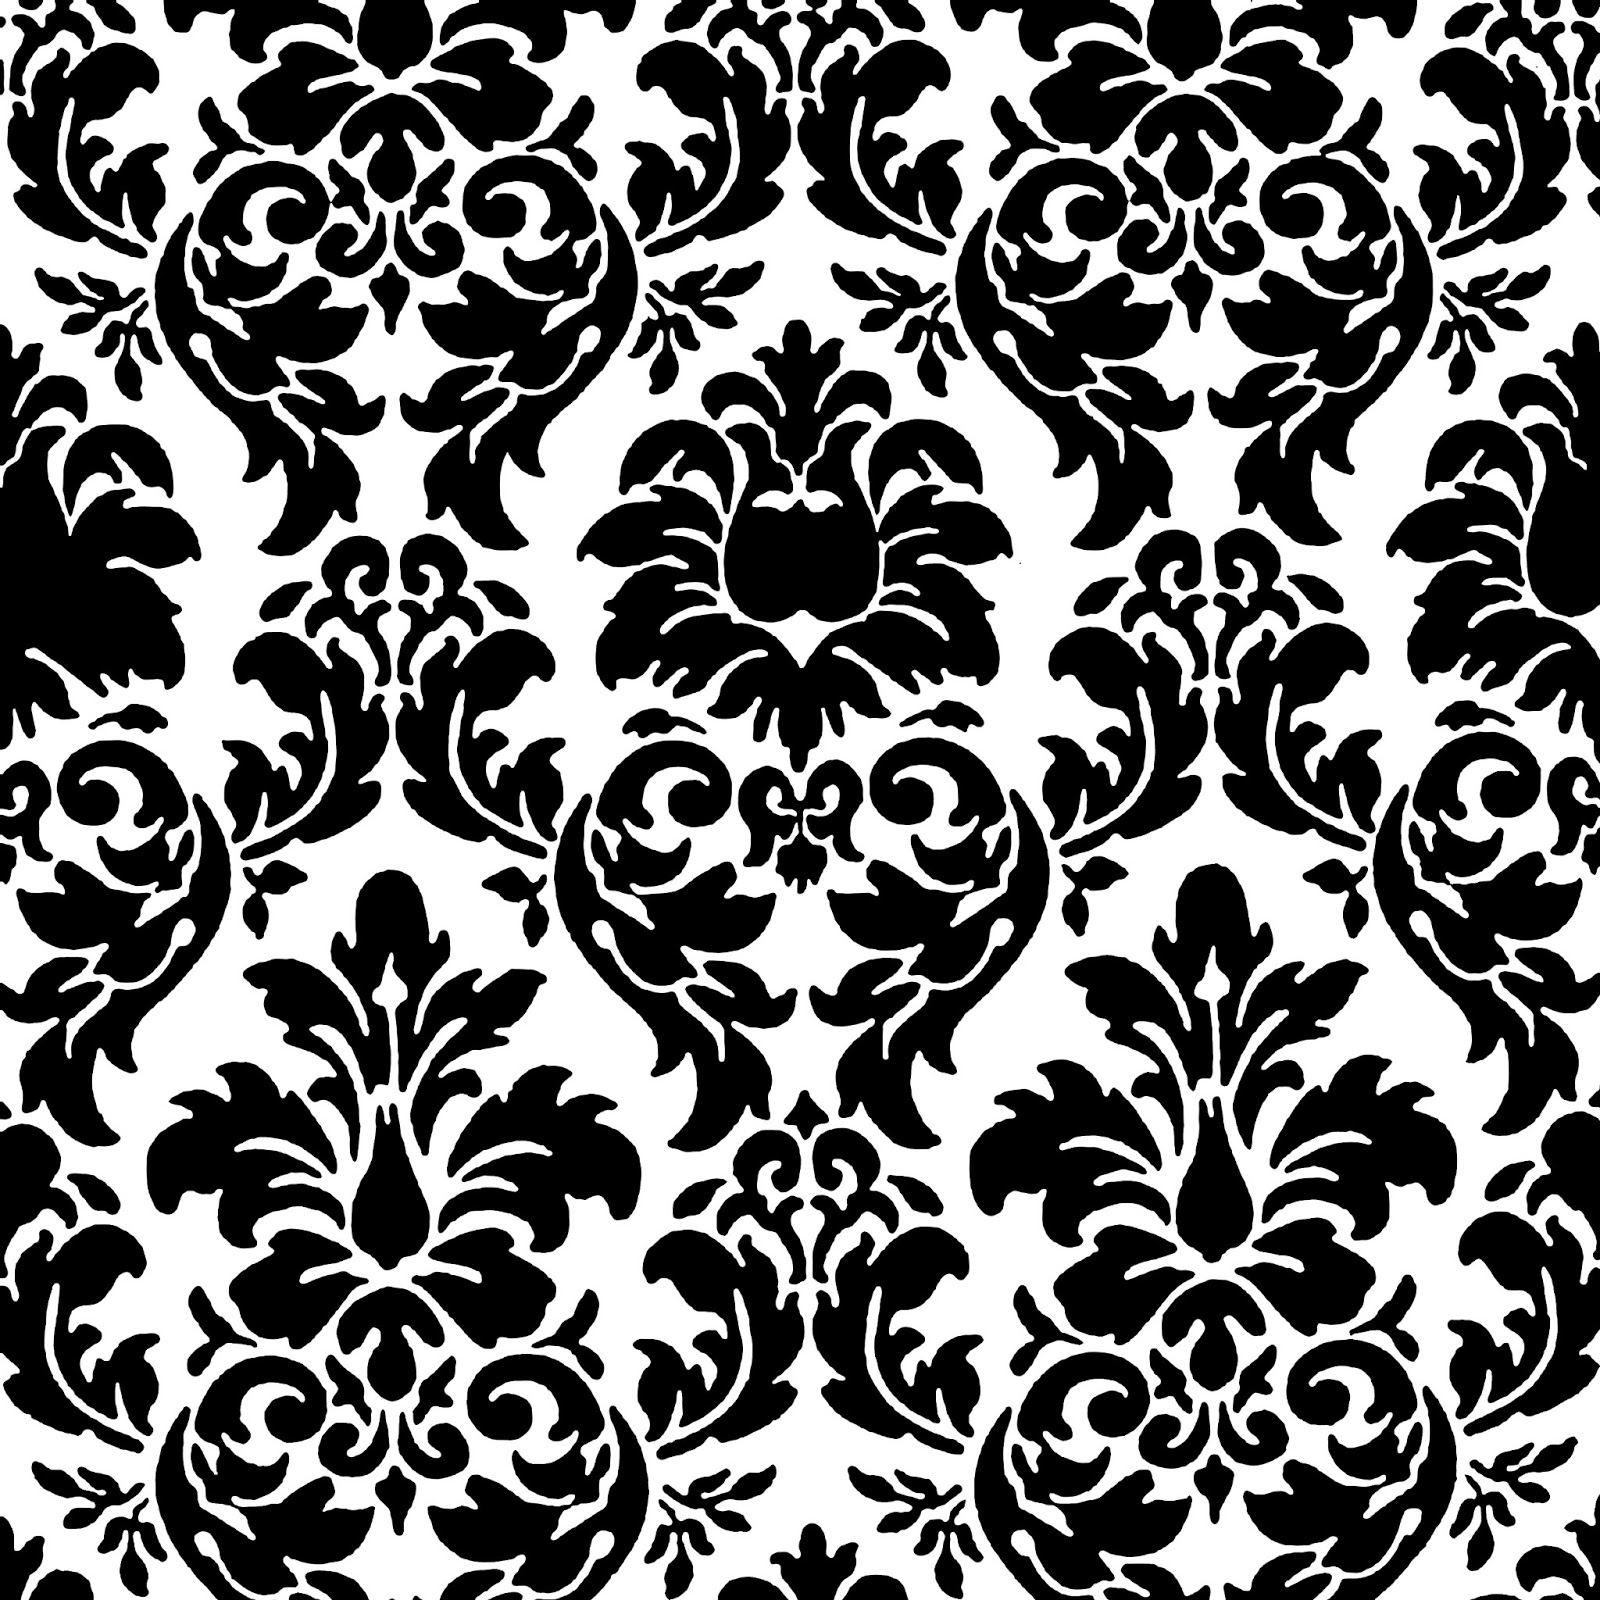 black positive space damask black and white free floral ... - photo#26